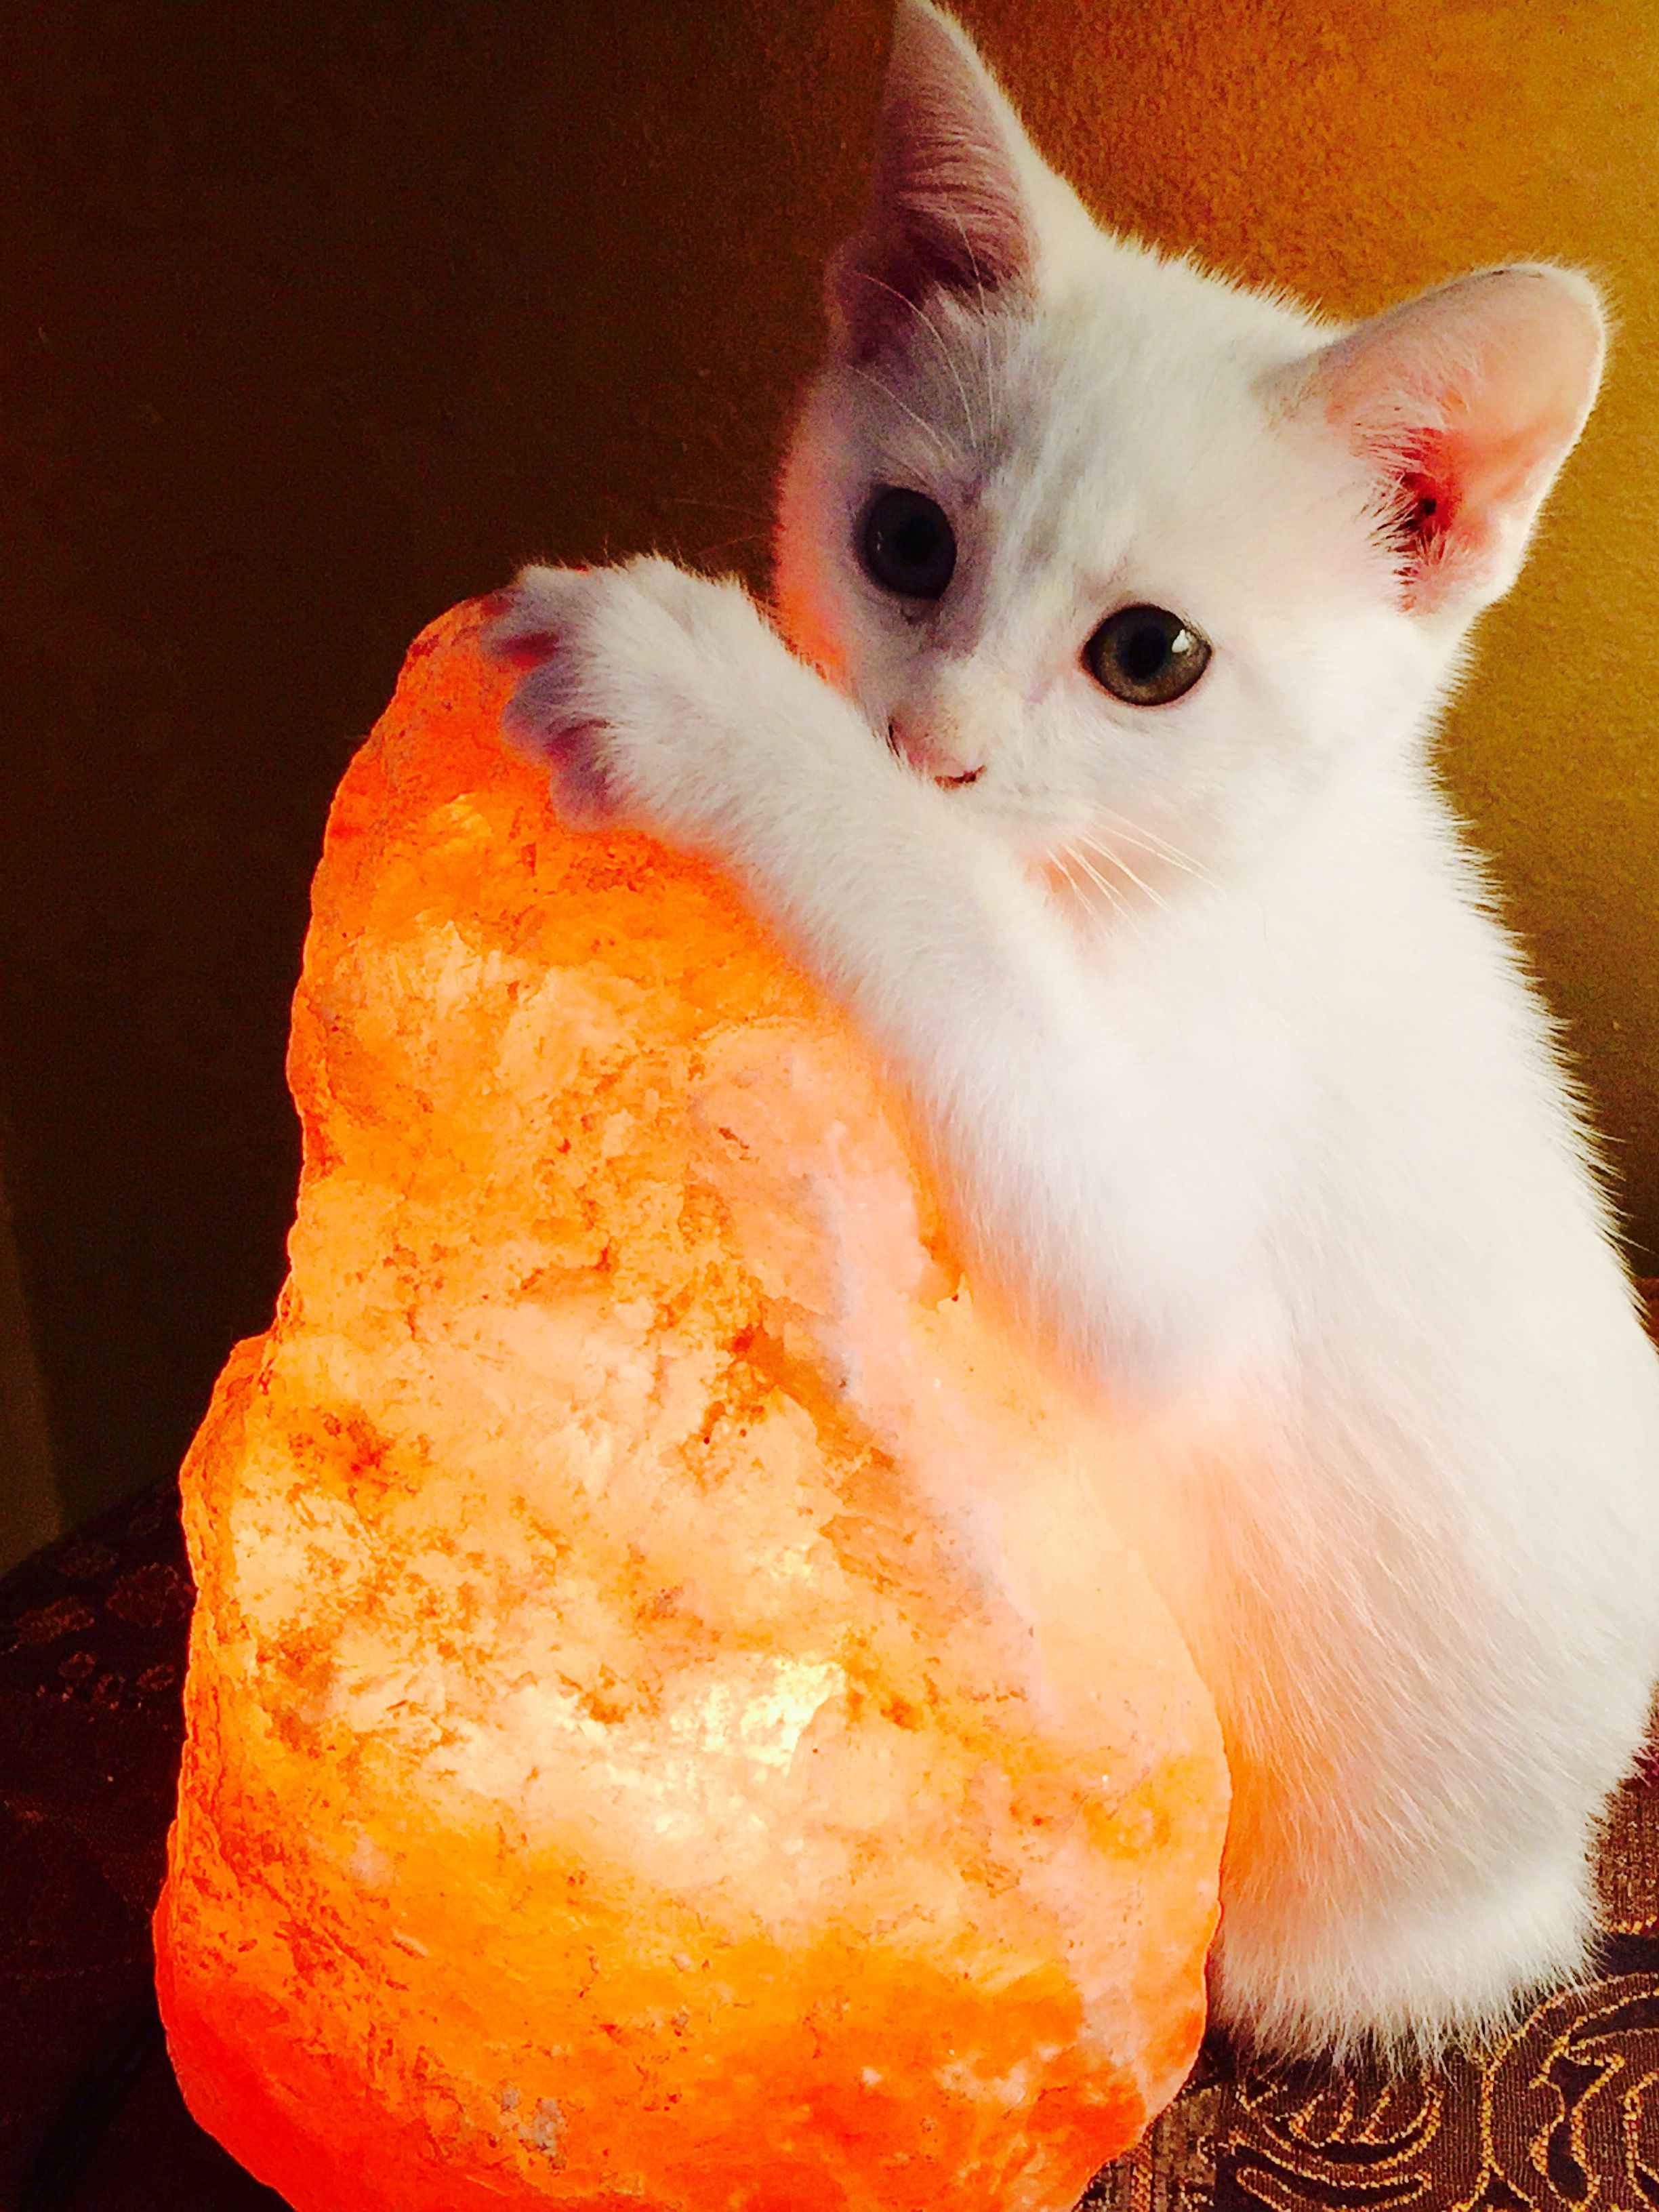 Salt Lamps And Cats Inspiration Sadie Loves The Warmth Of The Himalayan Salt Lamp Sadie Decorating Inspiration